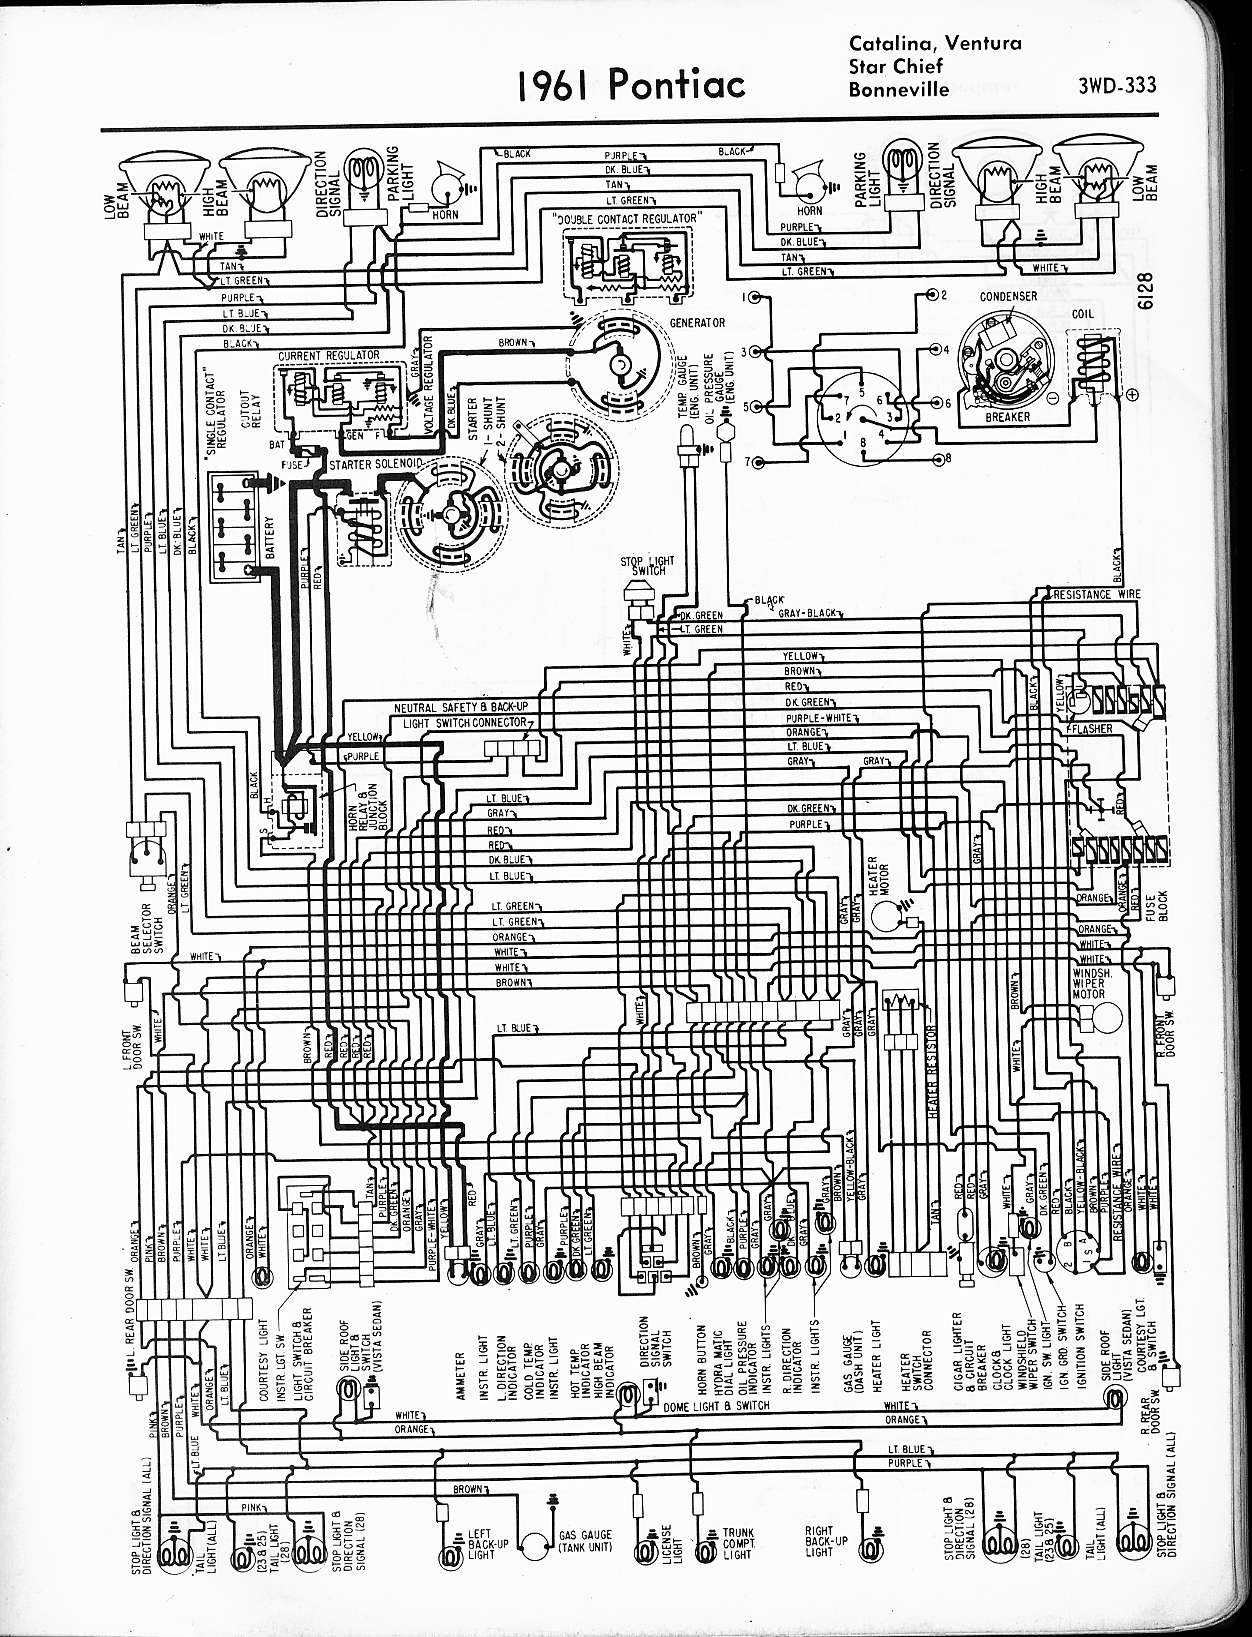 Chieftain Wiring Diagrams Schema 1987 Winnebago Diagram Pontiac 1957 1965 A 400 Amp Service